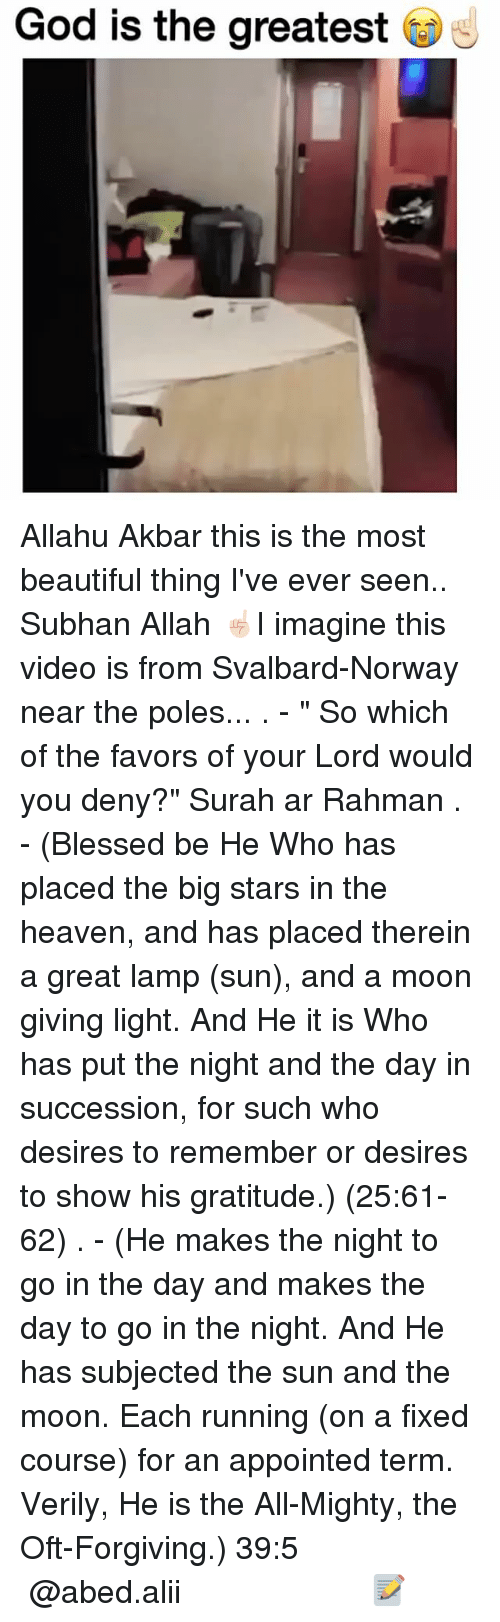 """svalbard: God is the greatest Allahu Akbar this is the most beautiful thing I've ever seen.. Subhan Allah ☝🏻I imagine this video is from Svalbard-Norway near the poles... . - """" So which of the favors of your Lord would you deny?"""" Surah ar Rahman . - (Blessed be He Who has placed the big stars in the heaven, and has placed therein a great lamp (sun), and a moon giving light. And He it is Who has put the night and the day in succession, for such who desires to remember or desires to show his gratitude.) (25:61-62) . - (He makes the night to go in the day and makes the day to go in the night. And He has subjected the sun and the moon. Each running (on a fixed course) for an appointed term. Verily, He is the All-Mighty, the Oft-Forgiving.) ﴿39:5﴾ ▃▃▃▃▃▃▃▃▃▃▃▃▃▃▃▃▃▃▃▃ @abed.alii 📝"""